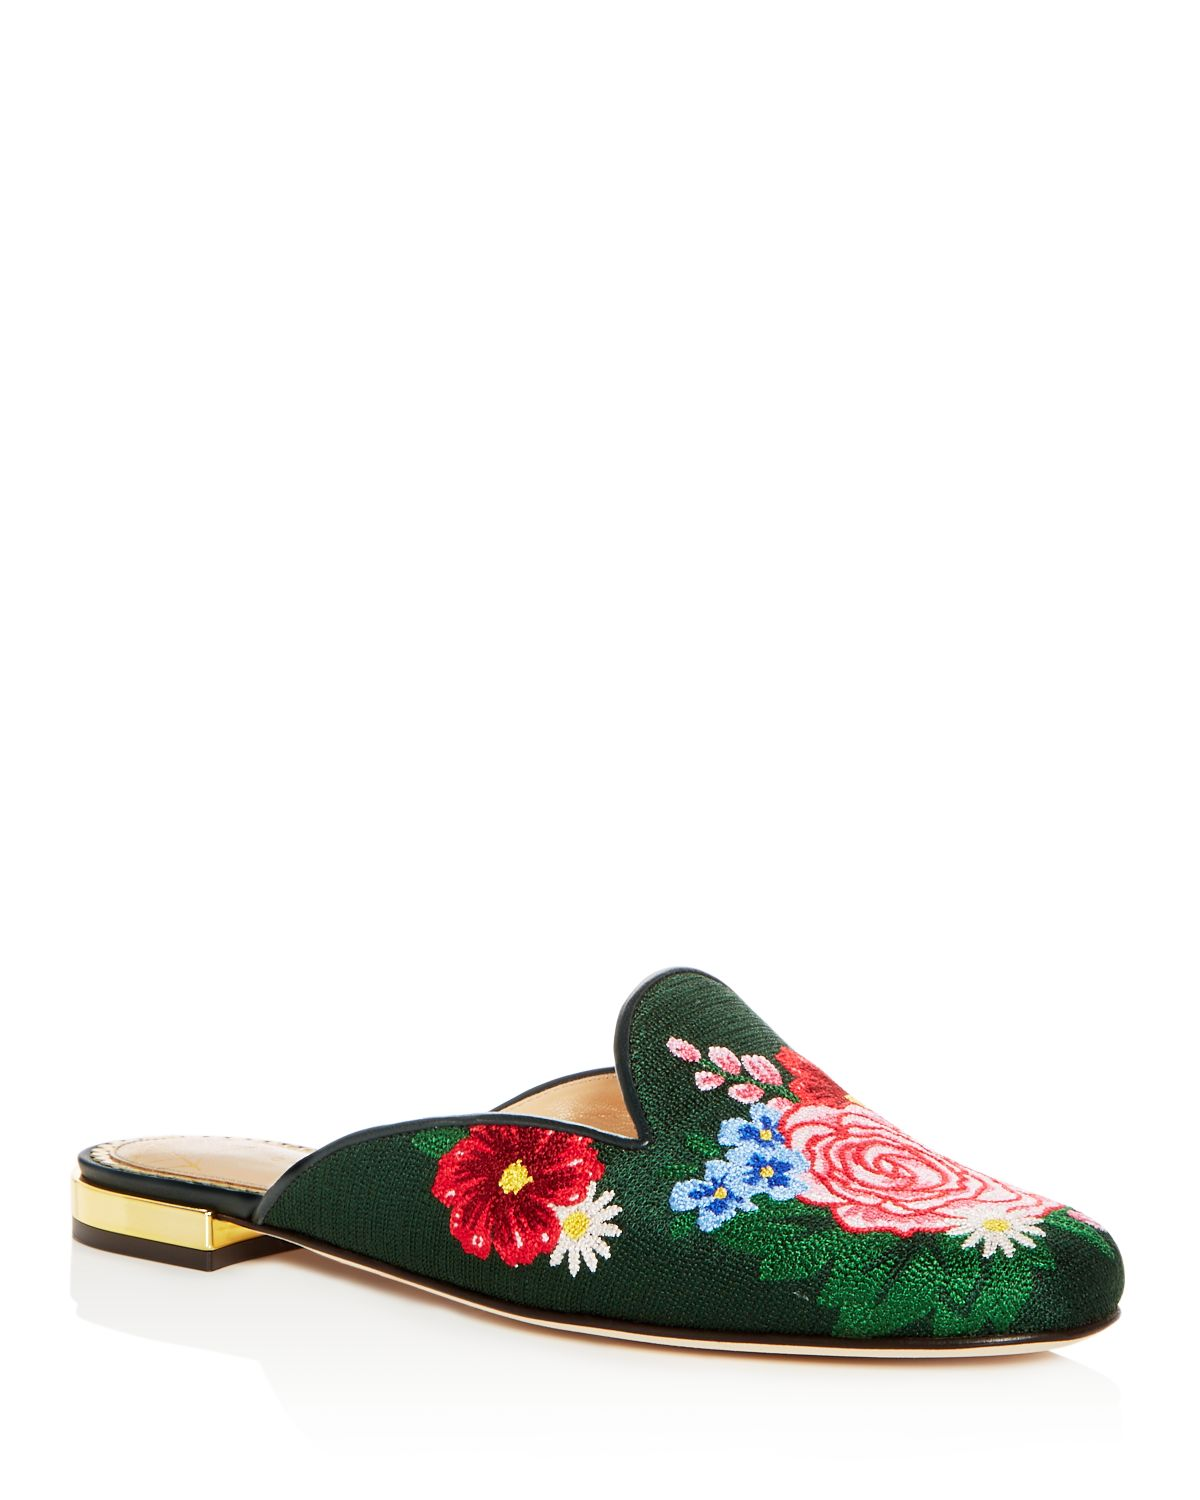 Charlotte Olympia Women's Rose Garden Embroidered Mules